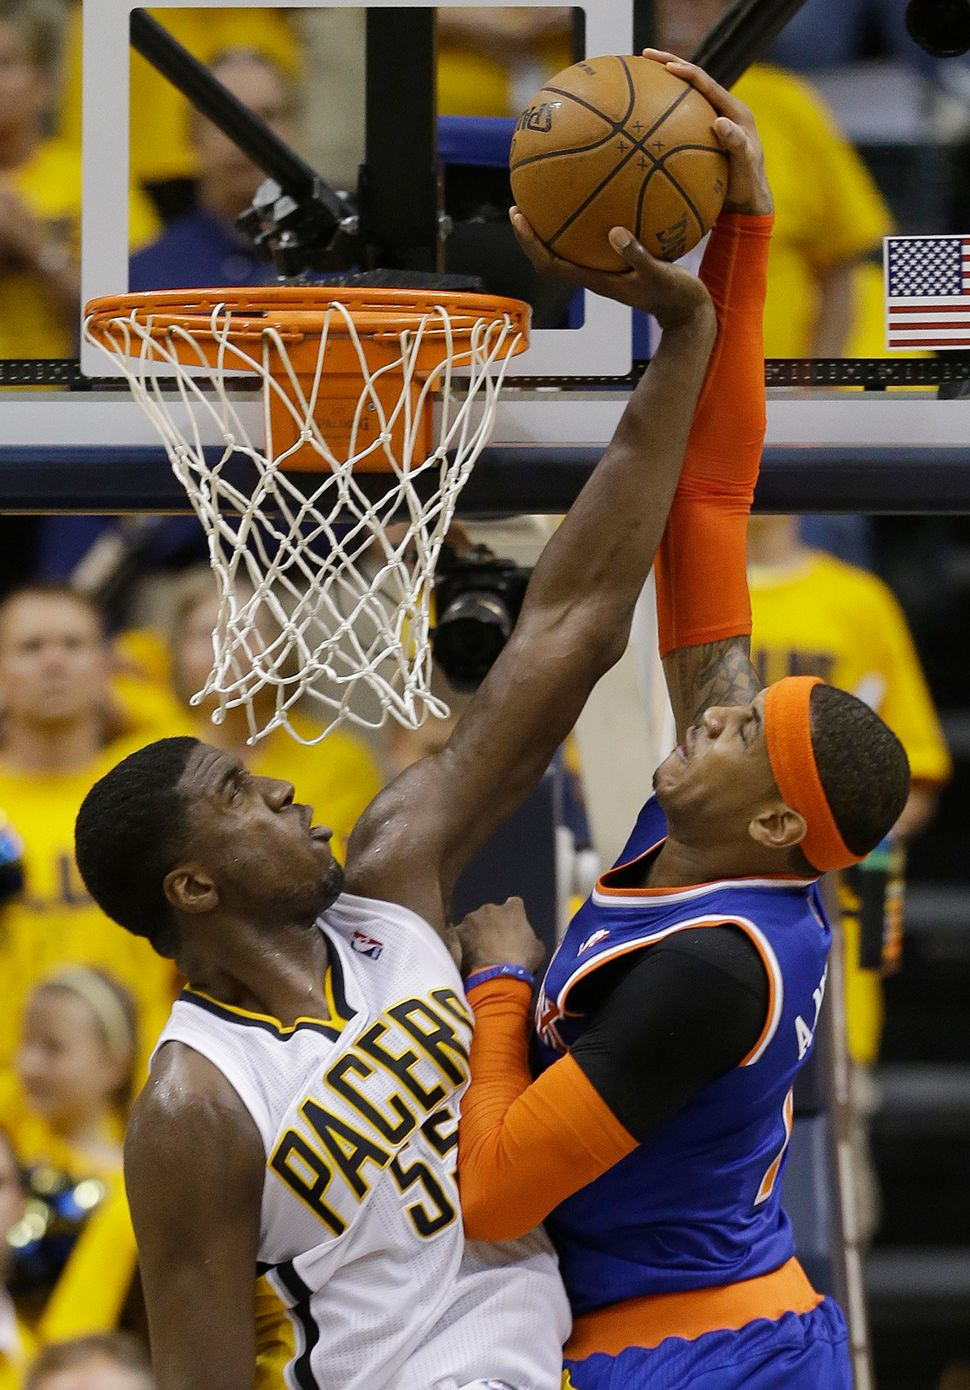 Indiana Pacers' Roy Hibbert blocks a shot from the New York Knicks' Carmelo Anthony, right, during the Eastern Conference Sem